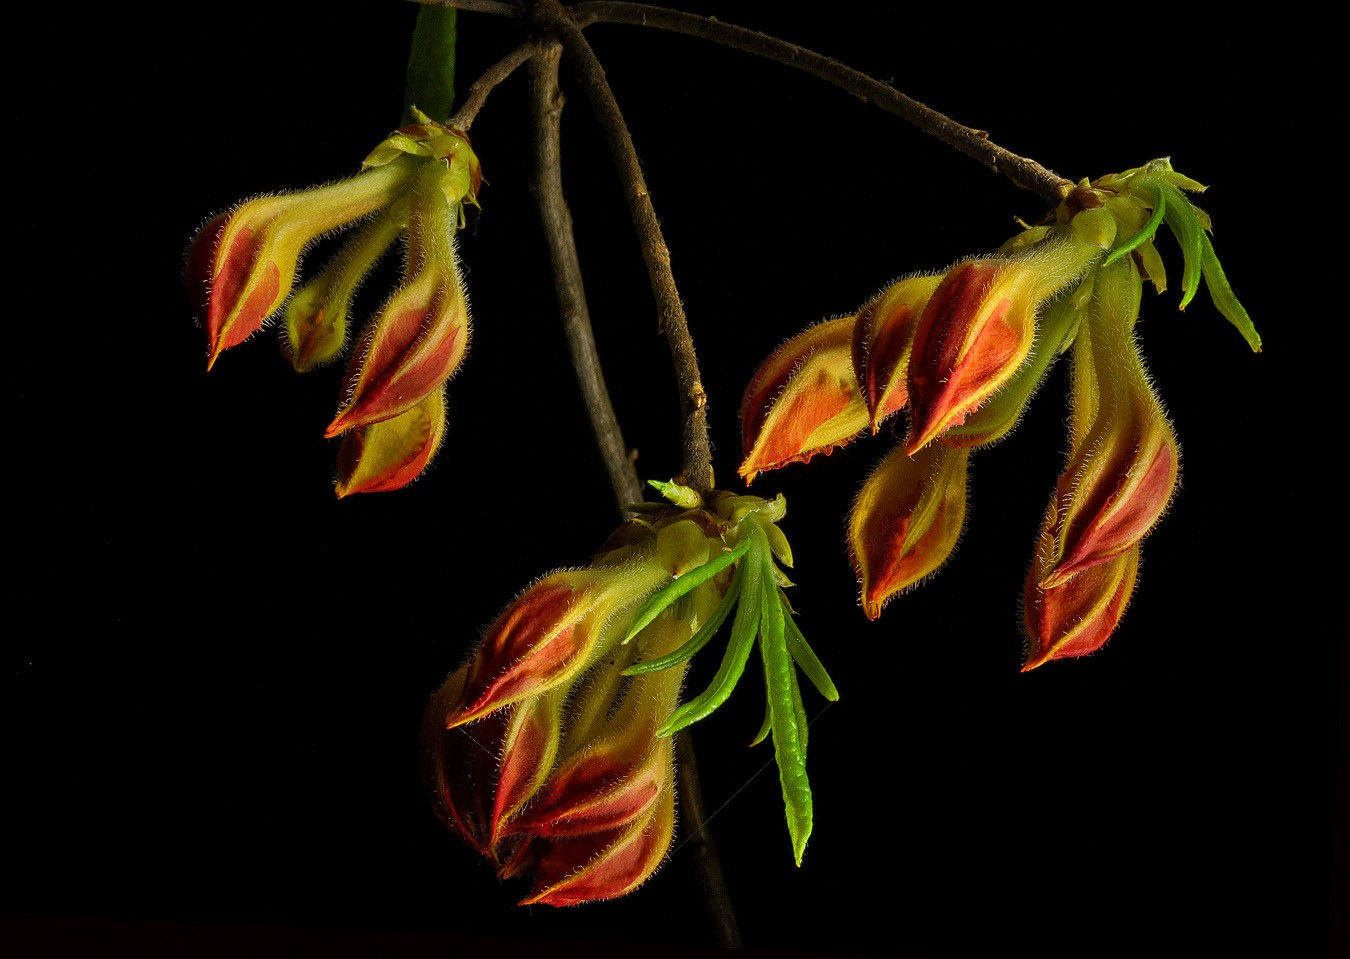 summer revisited flame azalea bud img aw author s sava gregory and verena